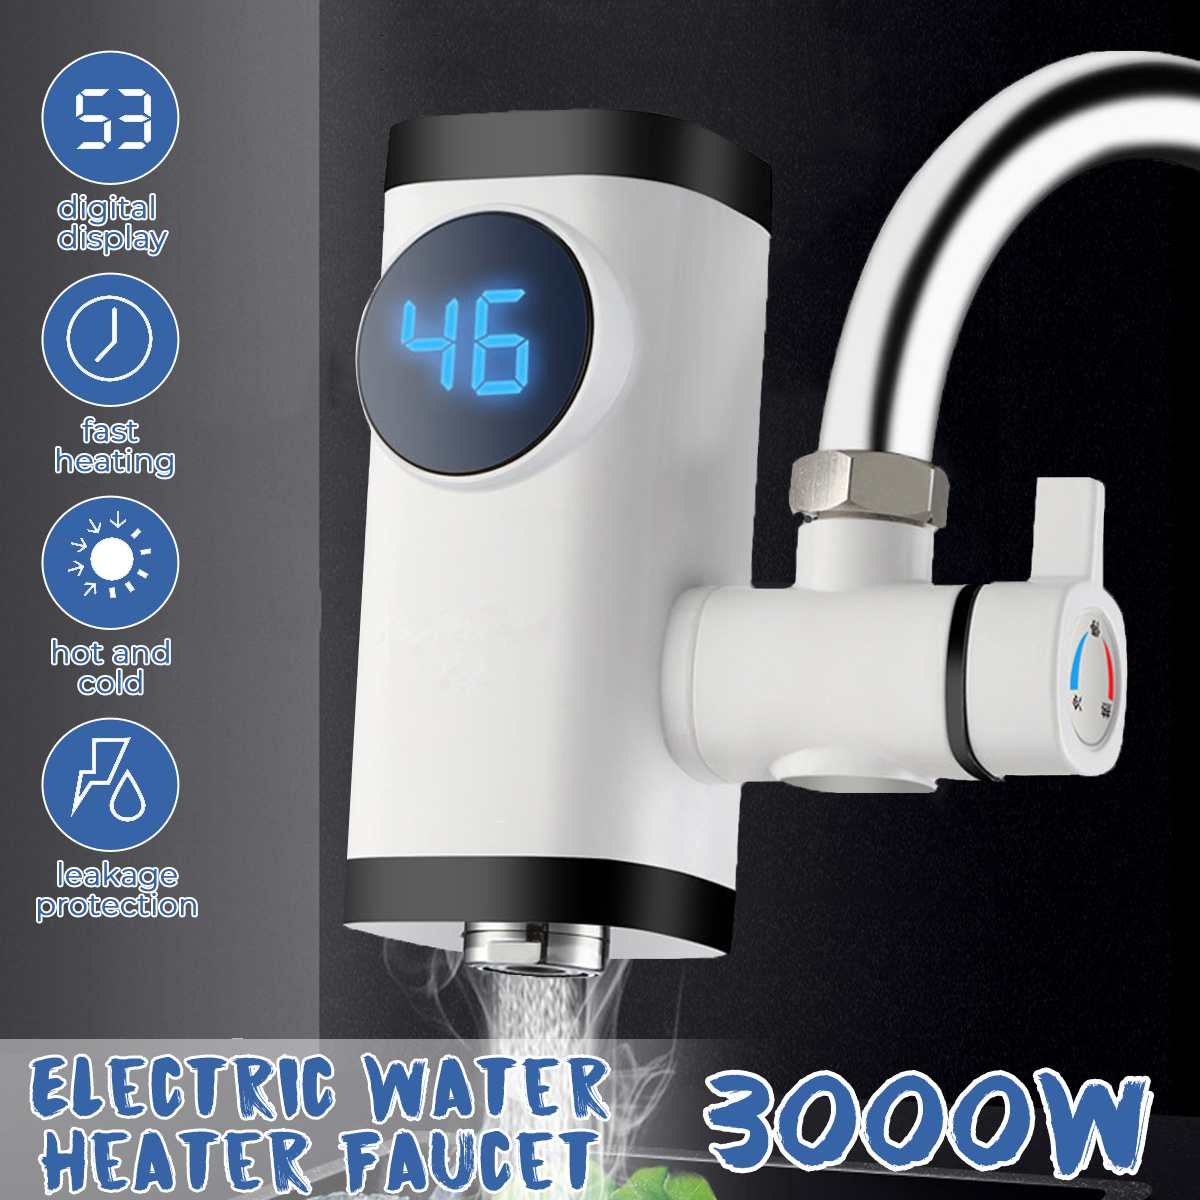 3000W Kitchen Faucet Electric Faucet Water Heater Instant Hot Water Digital LCD DisplayElectric Tankless Fast Heating Water Tap